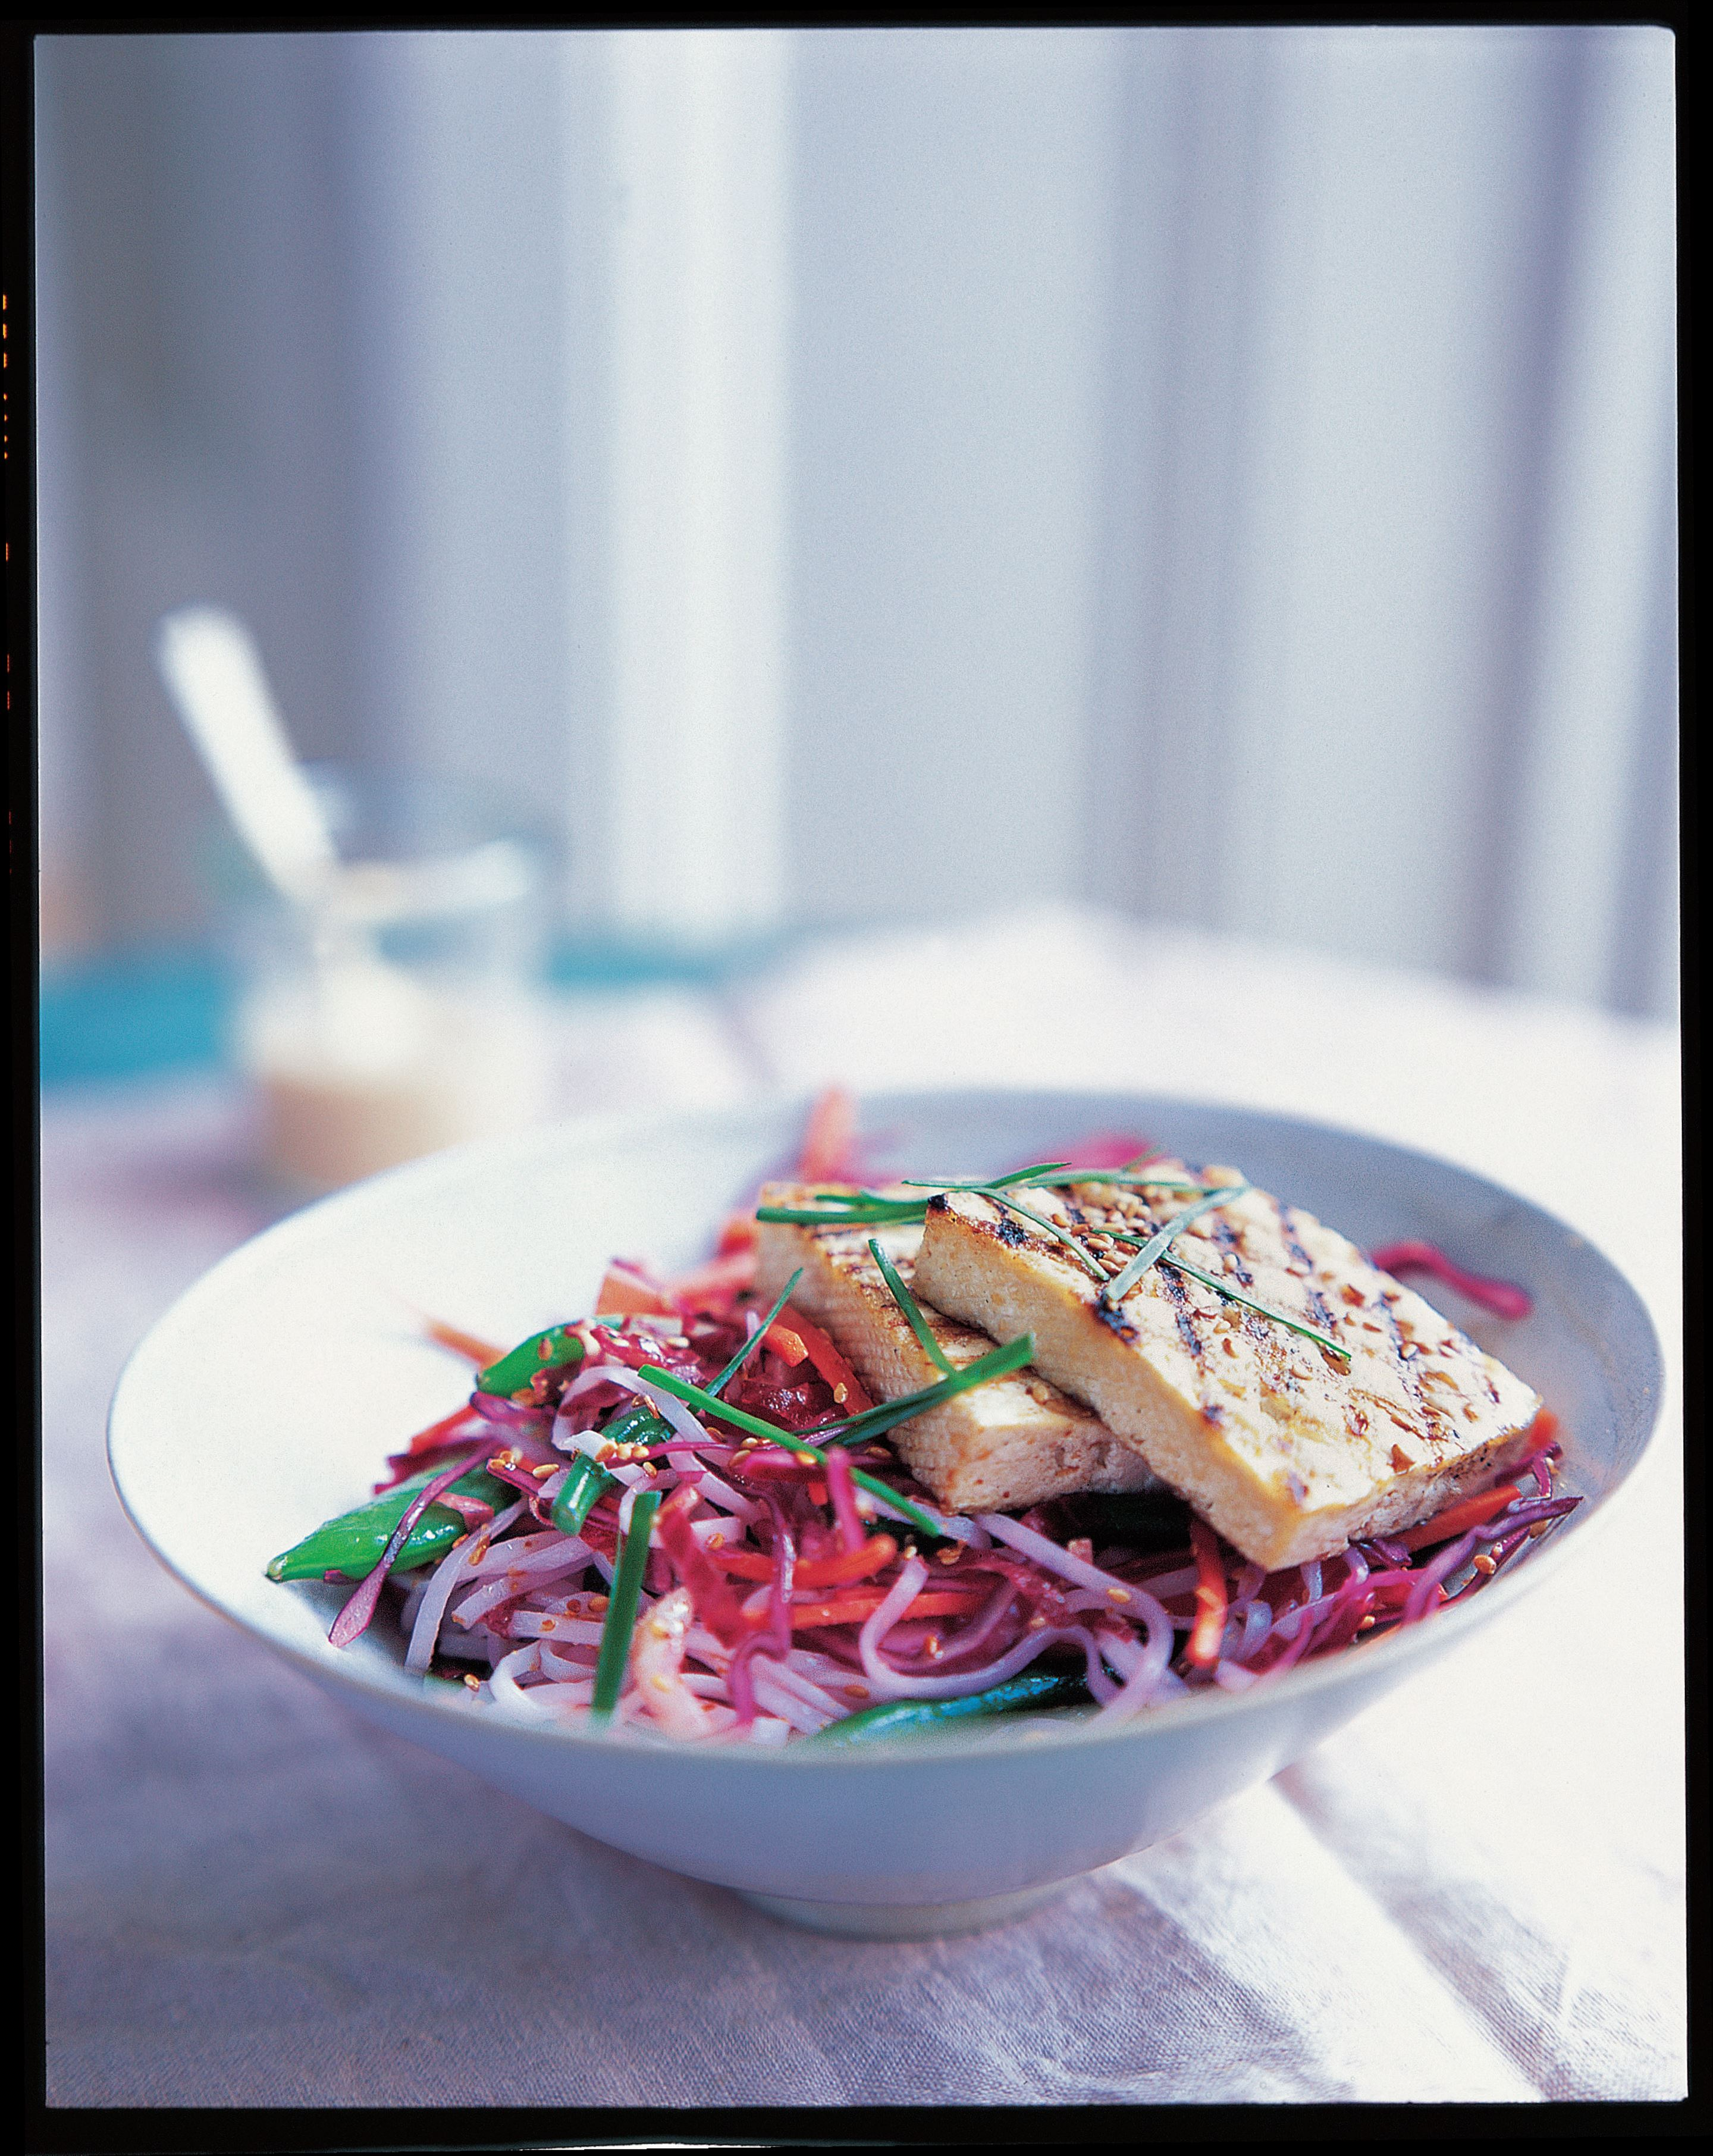 Grilled tofu, green bean, noodle and sesame salad